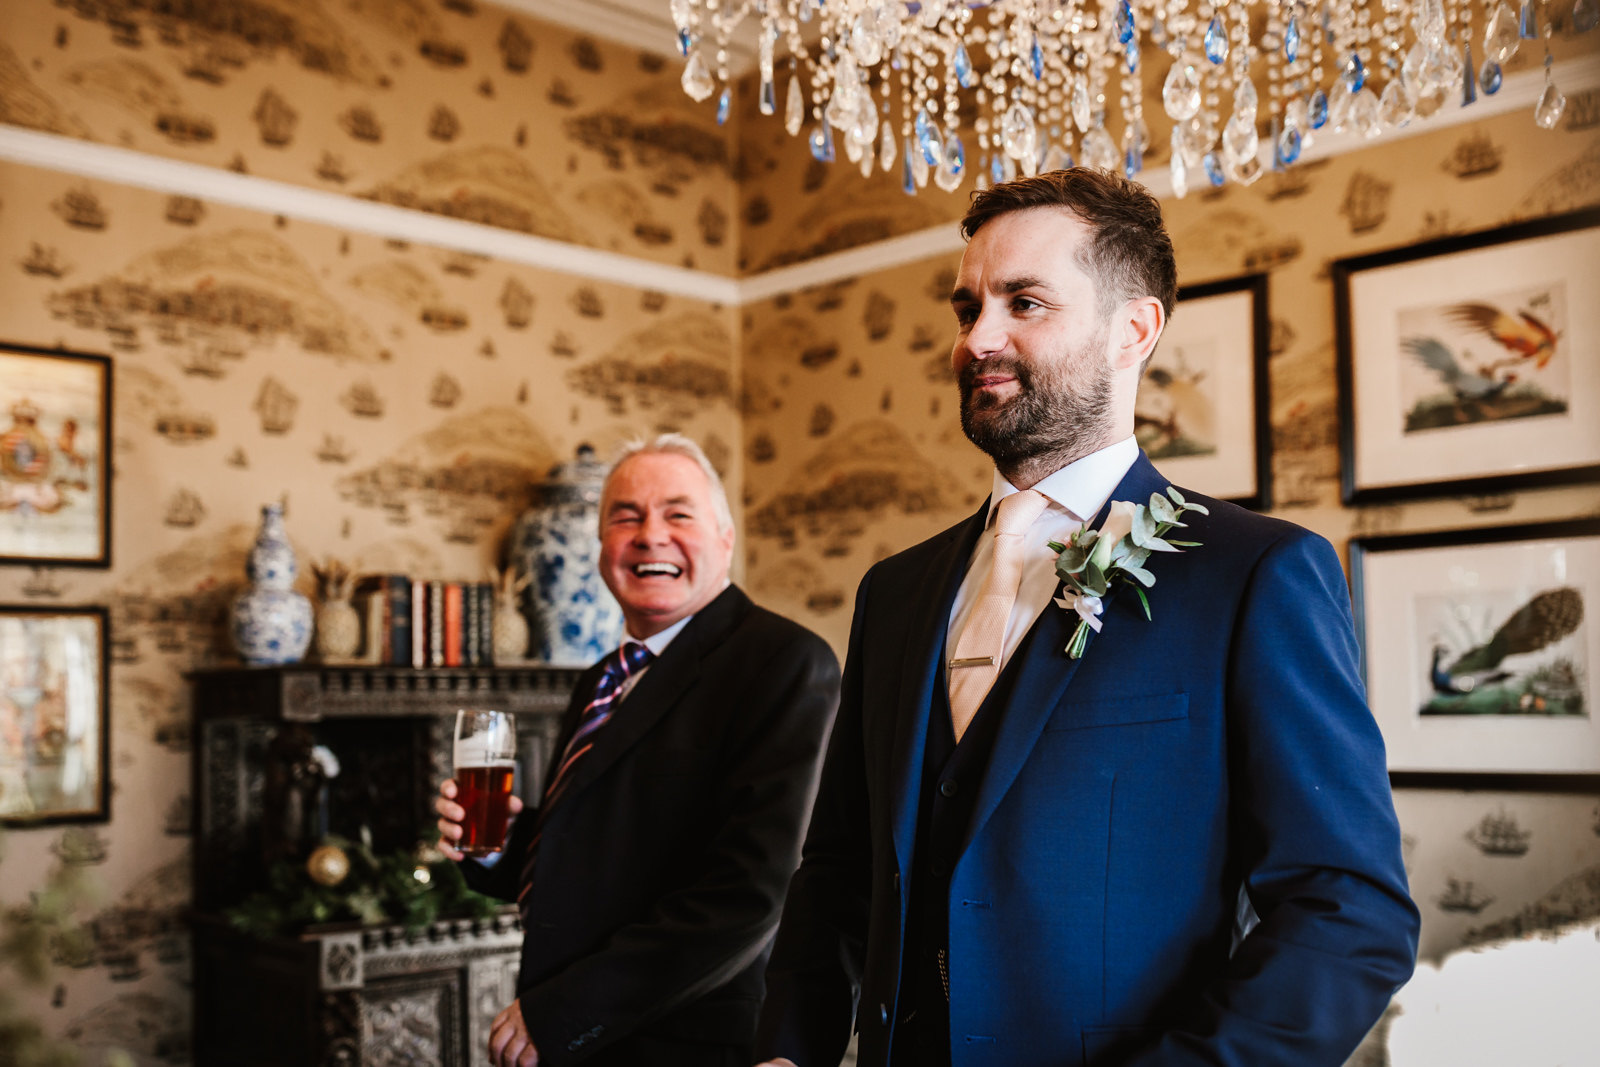 Groom with his guest